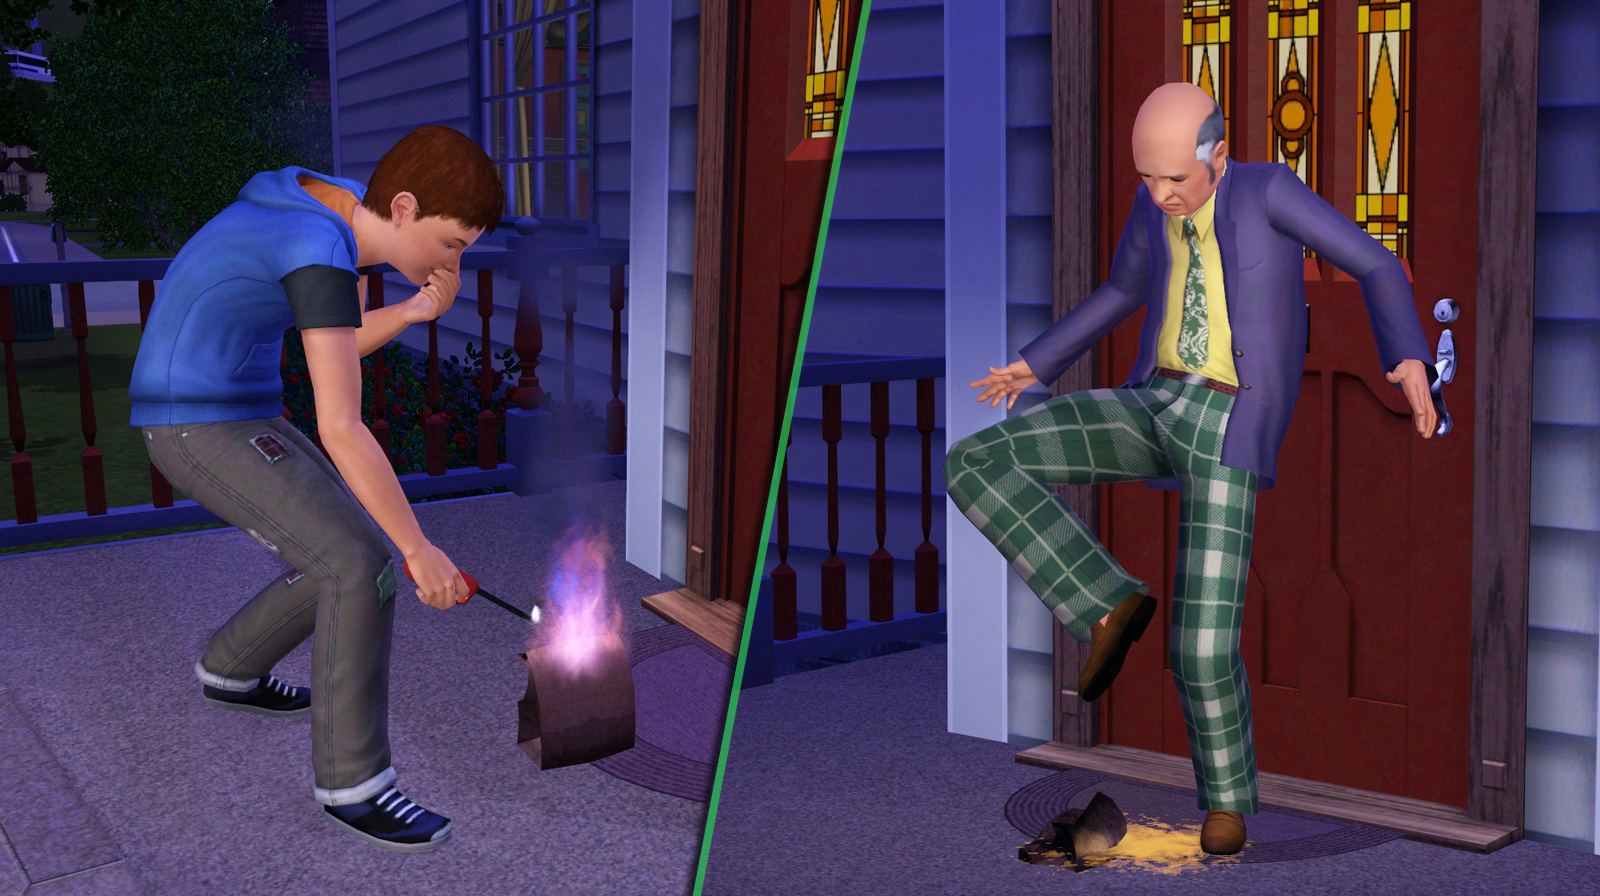 The Sims 4 Guides